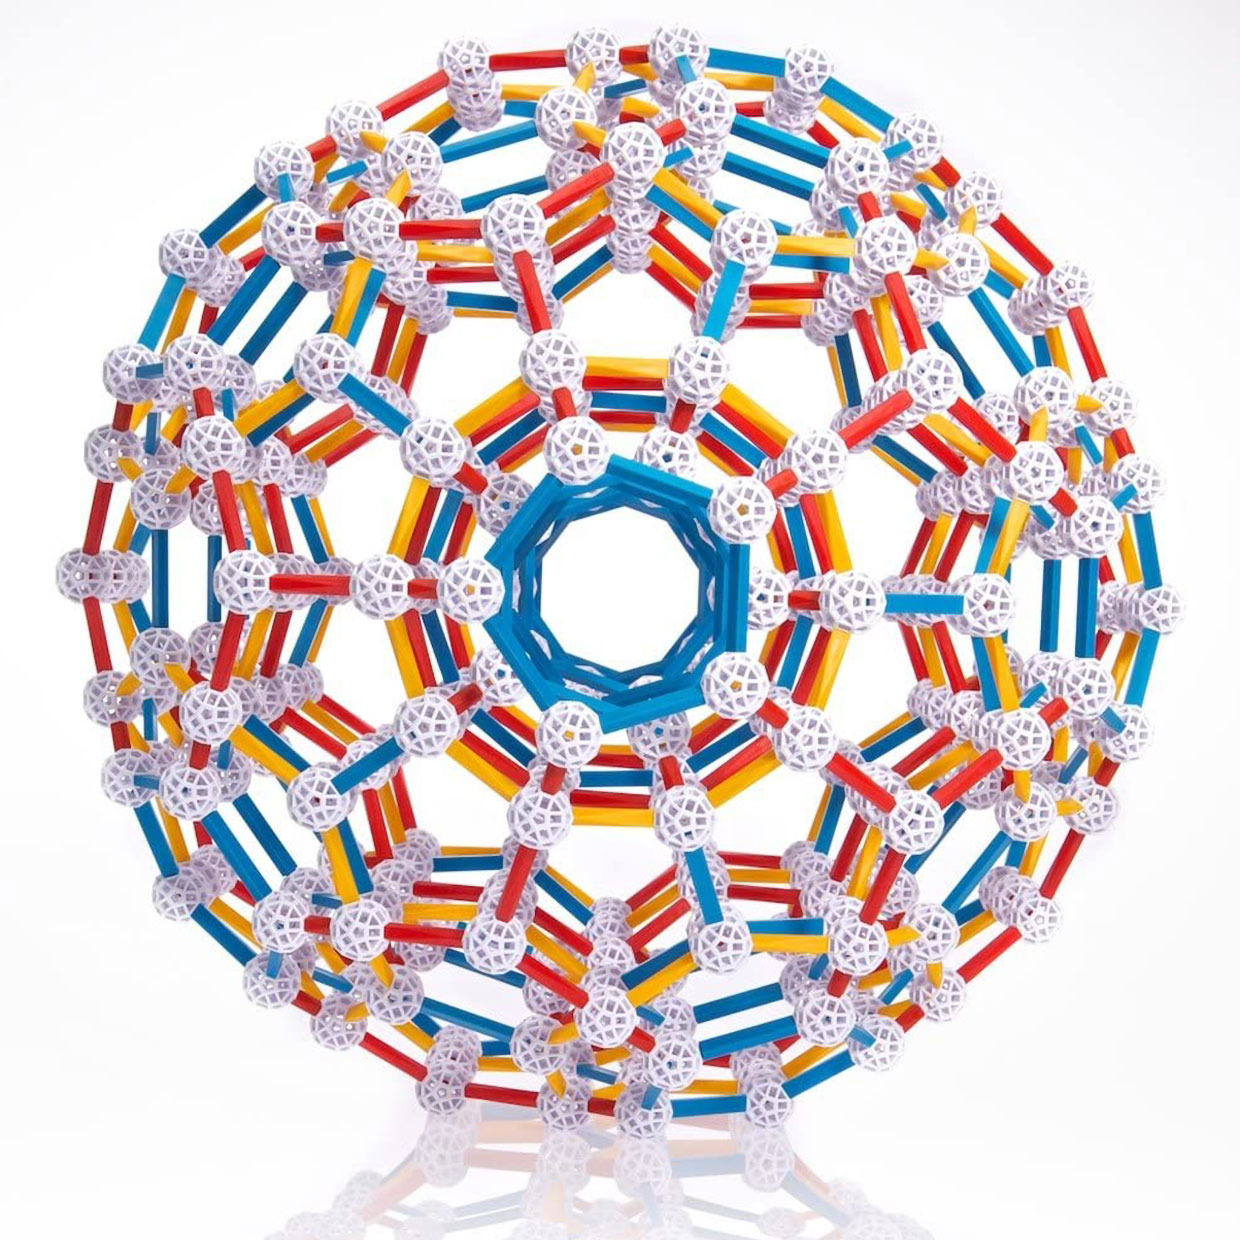 Adam Savage Builds a Hyperdodecahedron